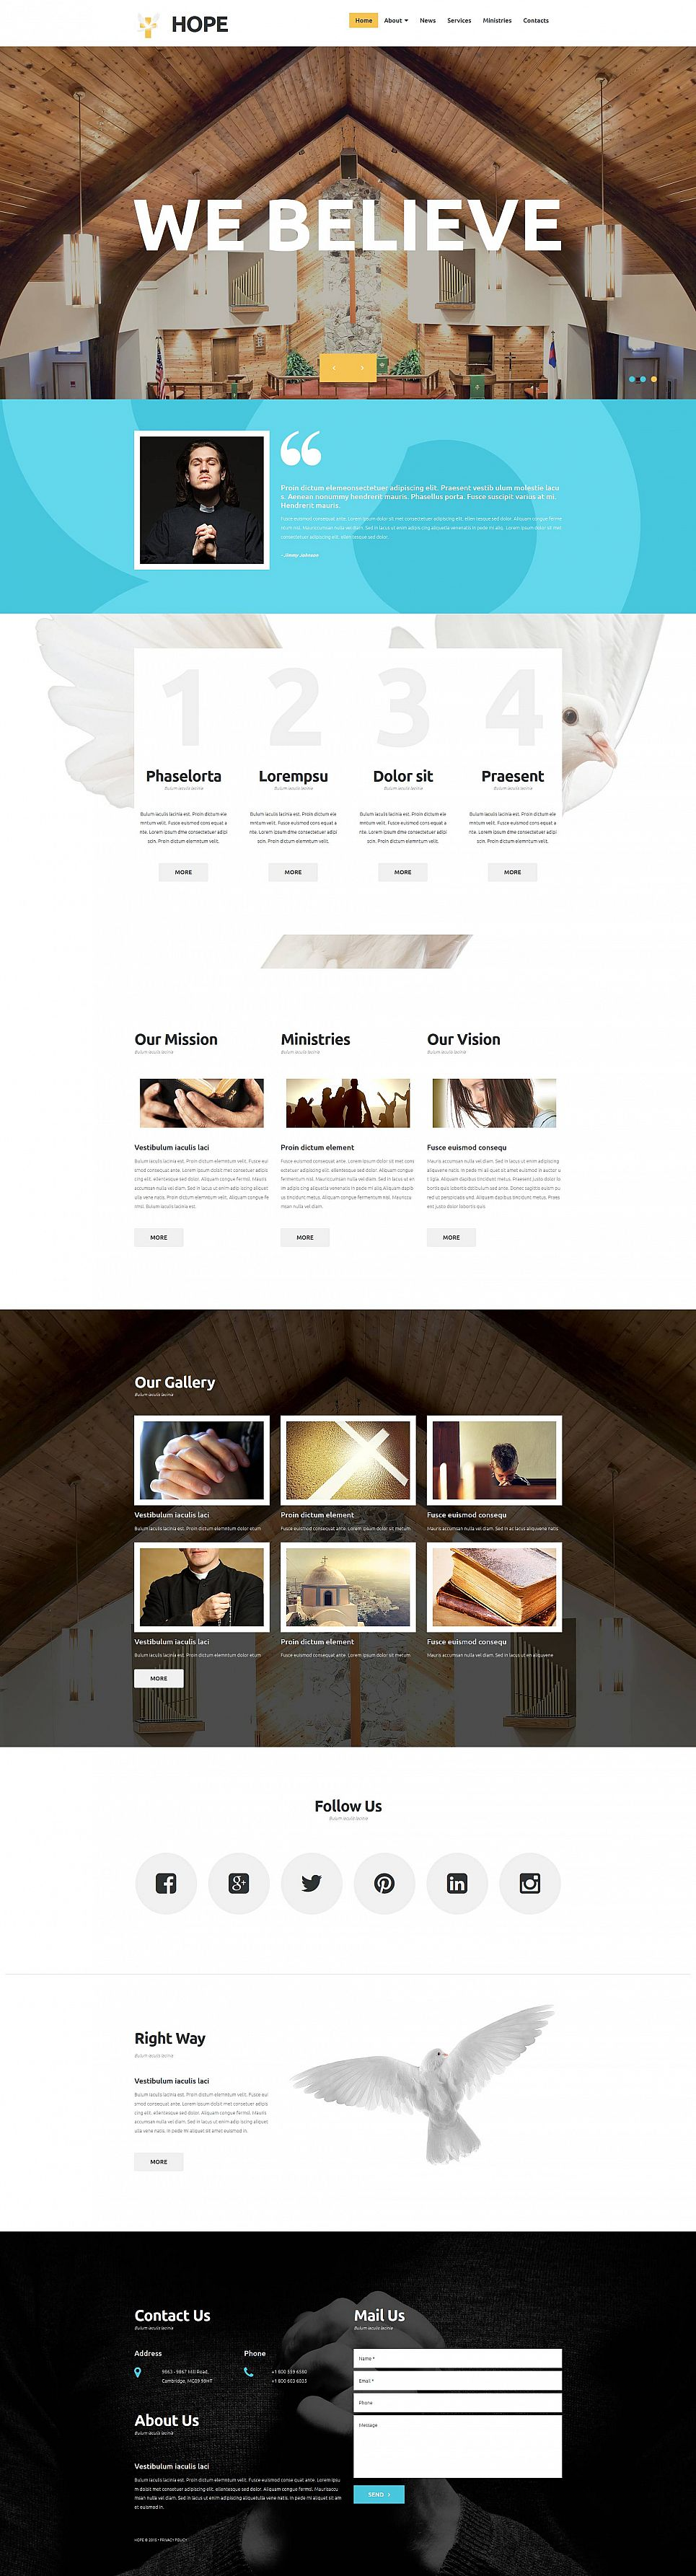 Responsive Church Website Template - image